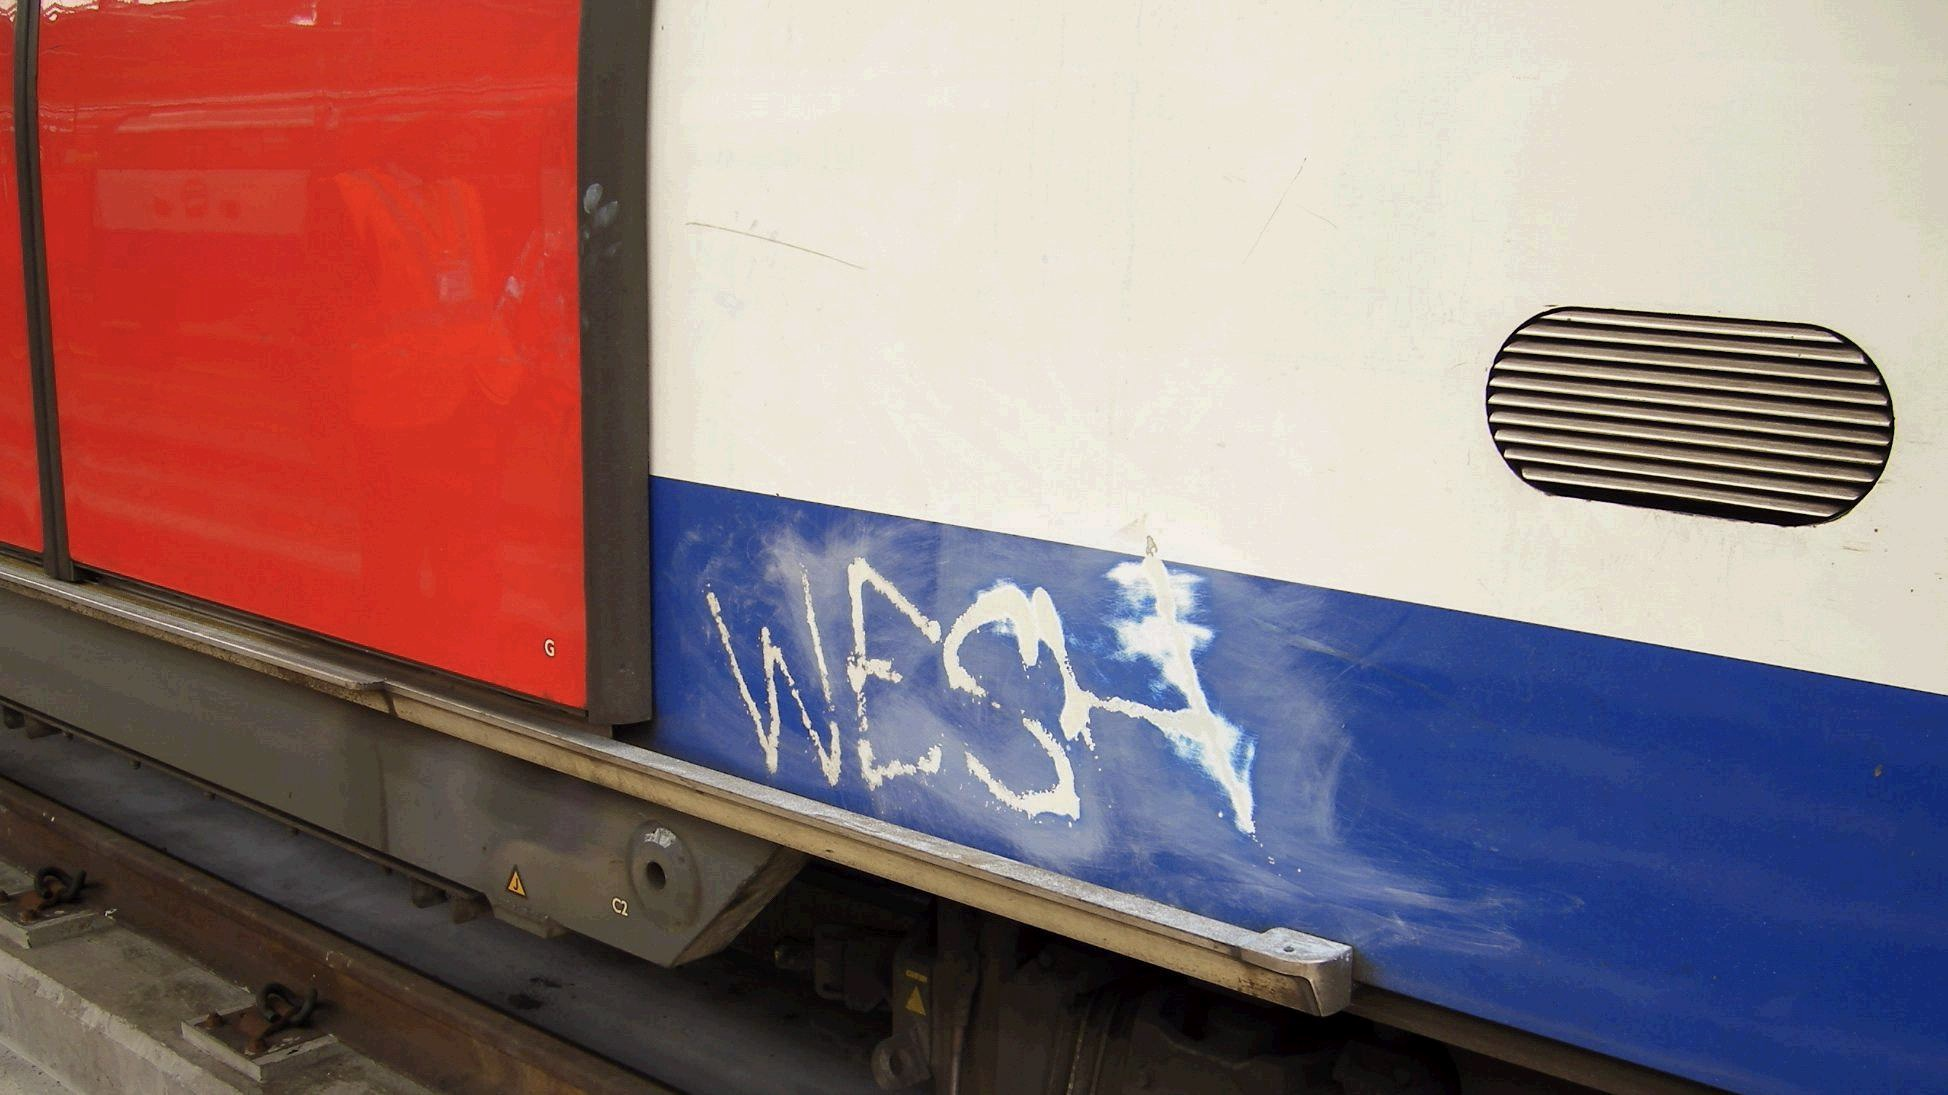 Revitaglaze offers train branding, vinyl wrapping & livery options for new or refurbished carriages. Visit the website & download the brochure to find out more.